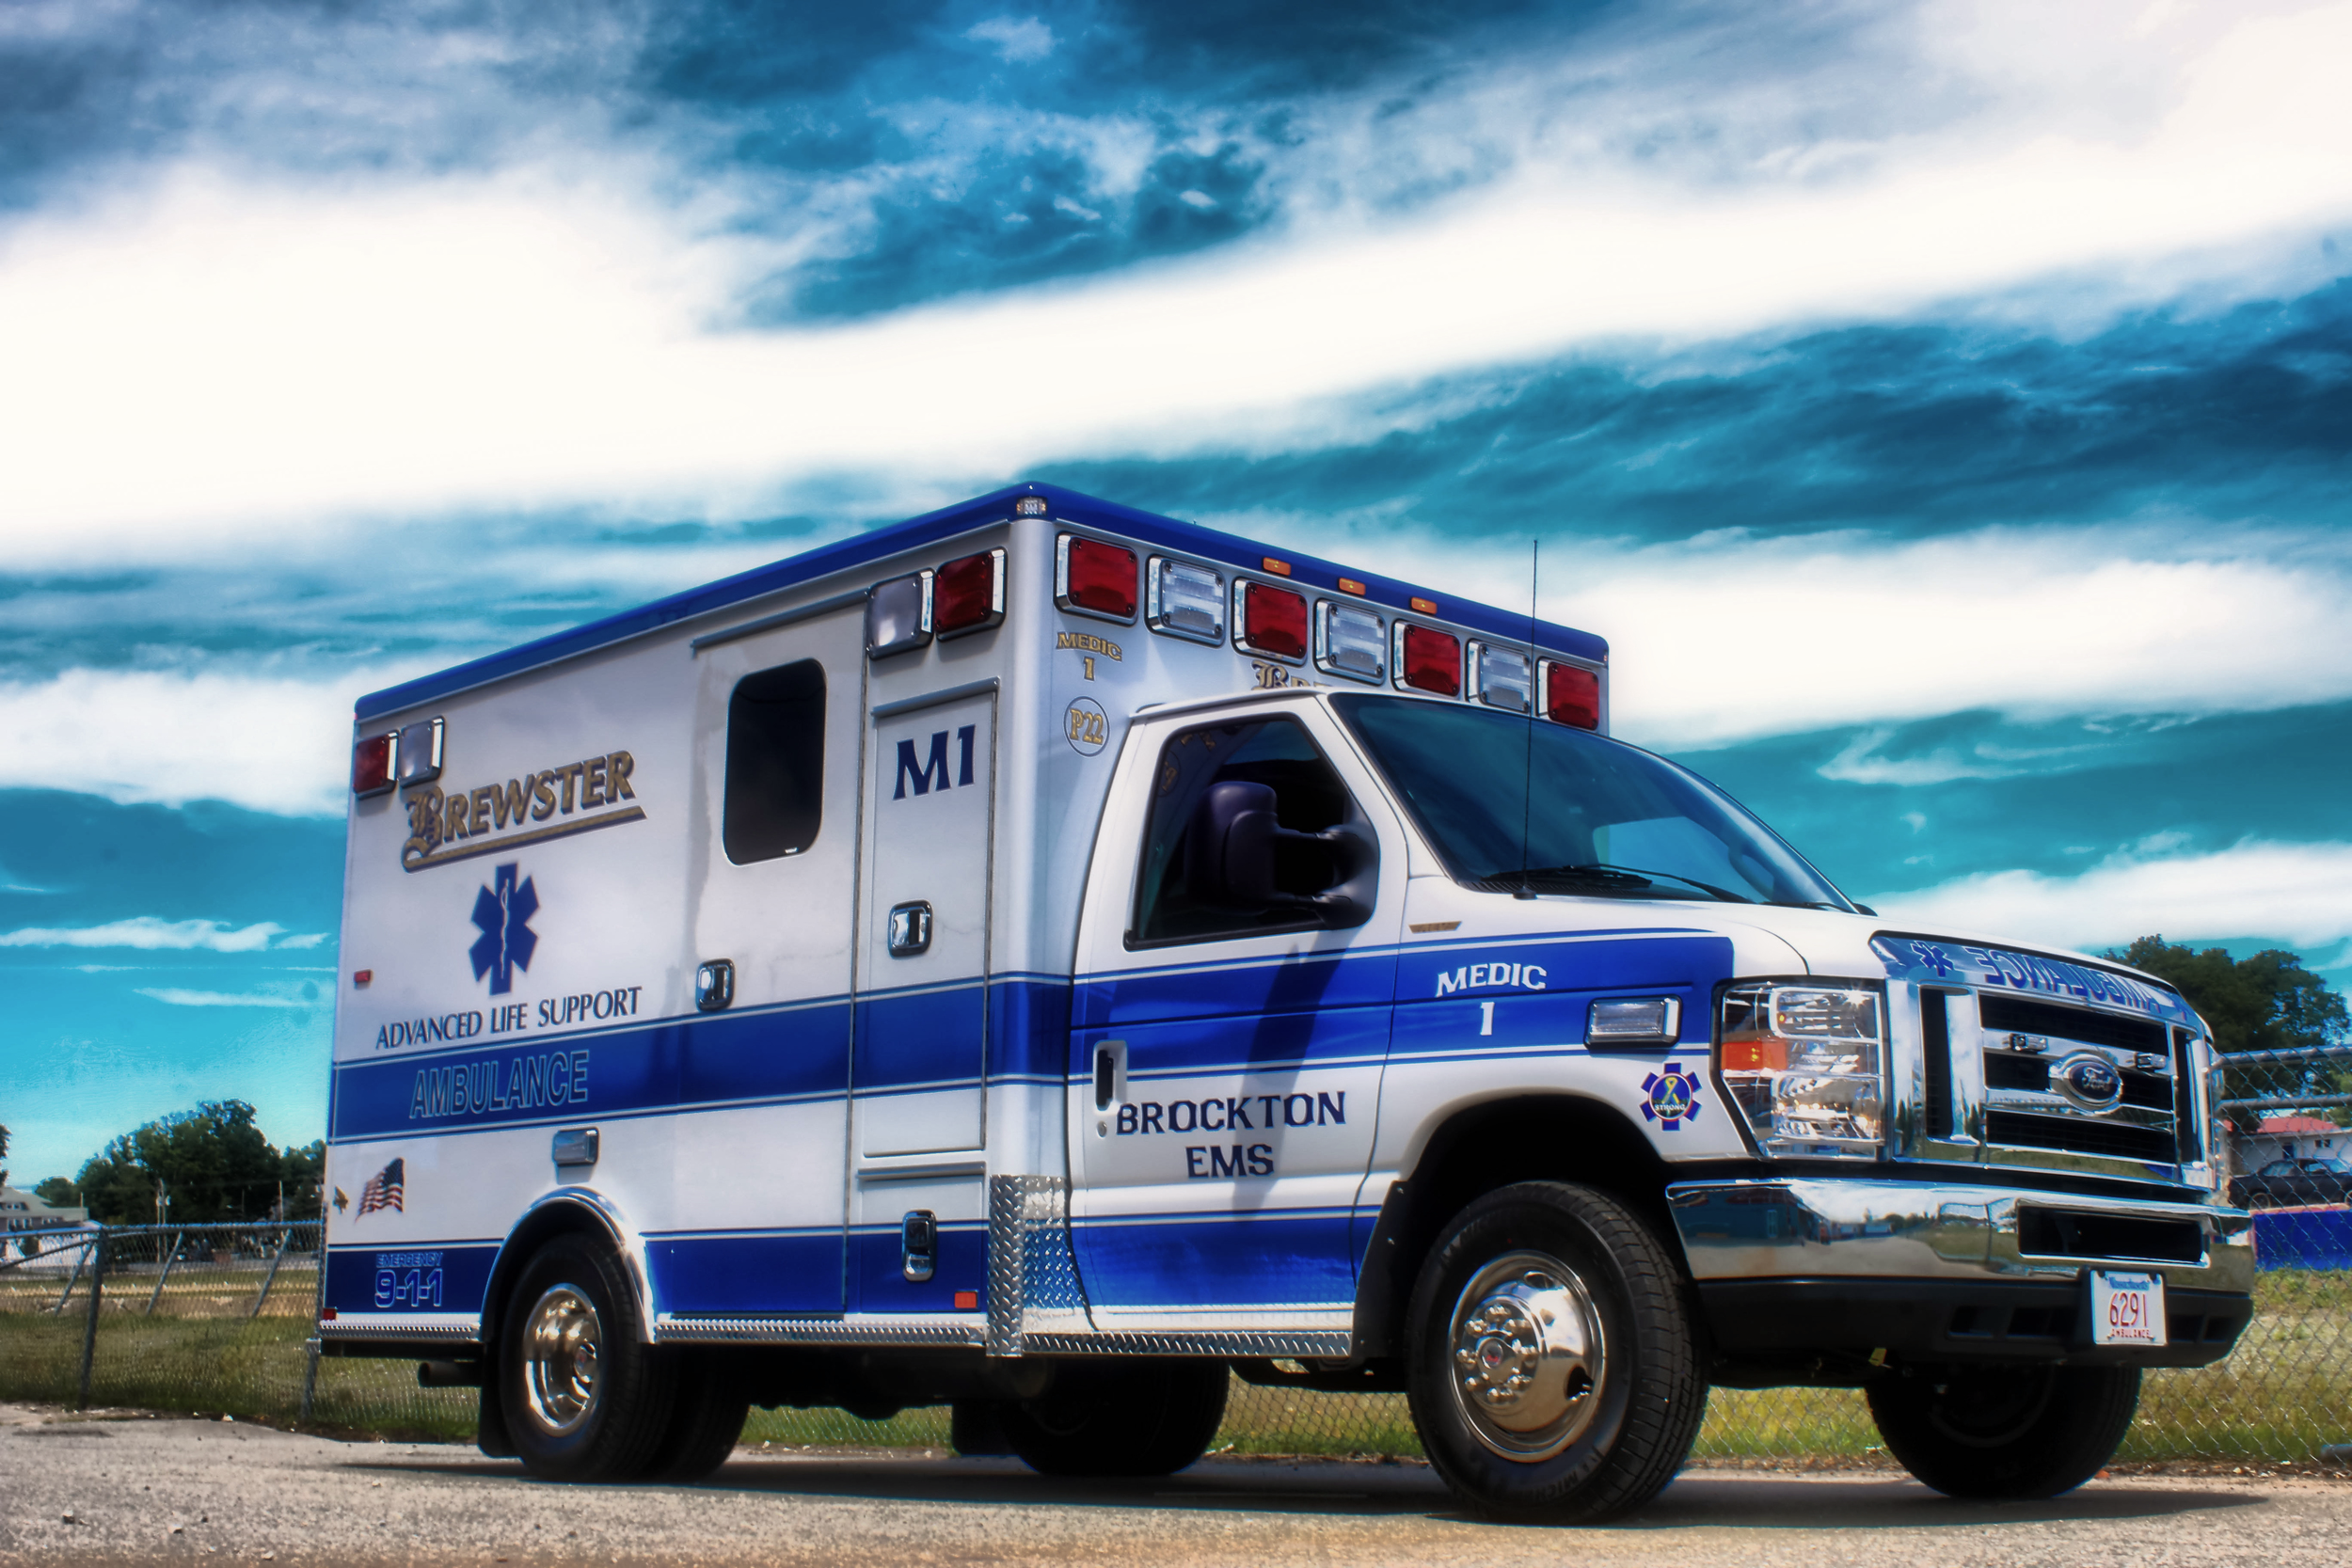 Brockton Advanced Life Support ambulance